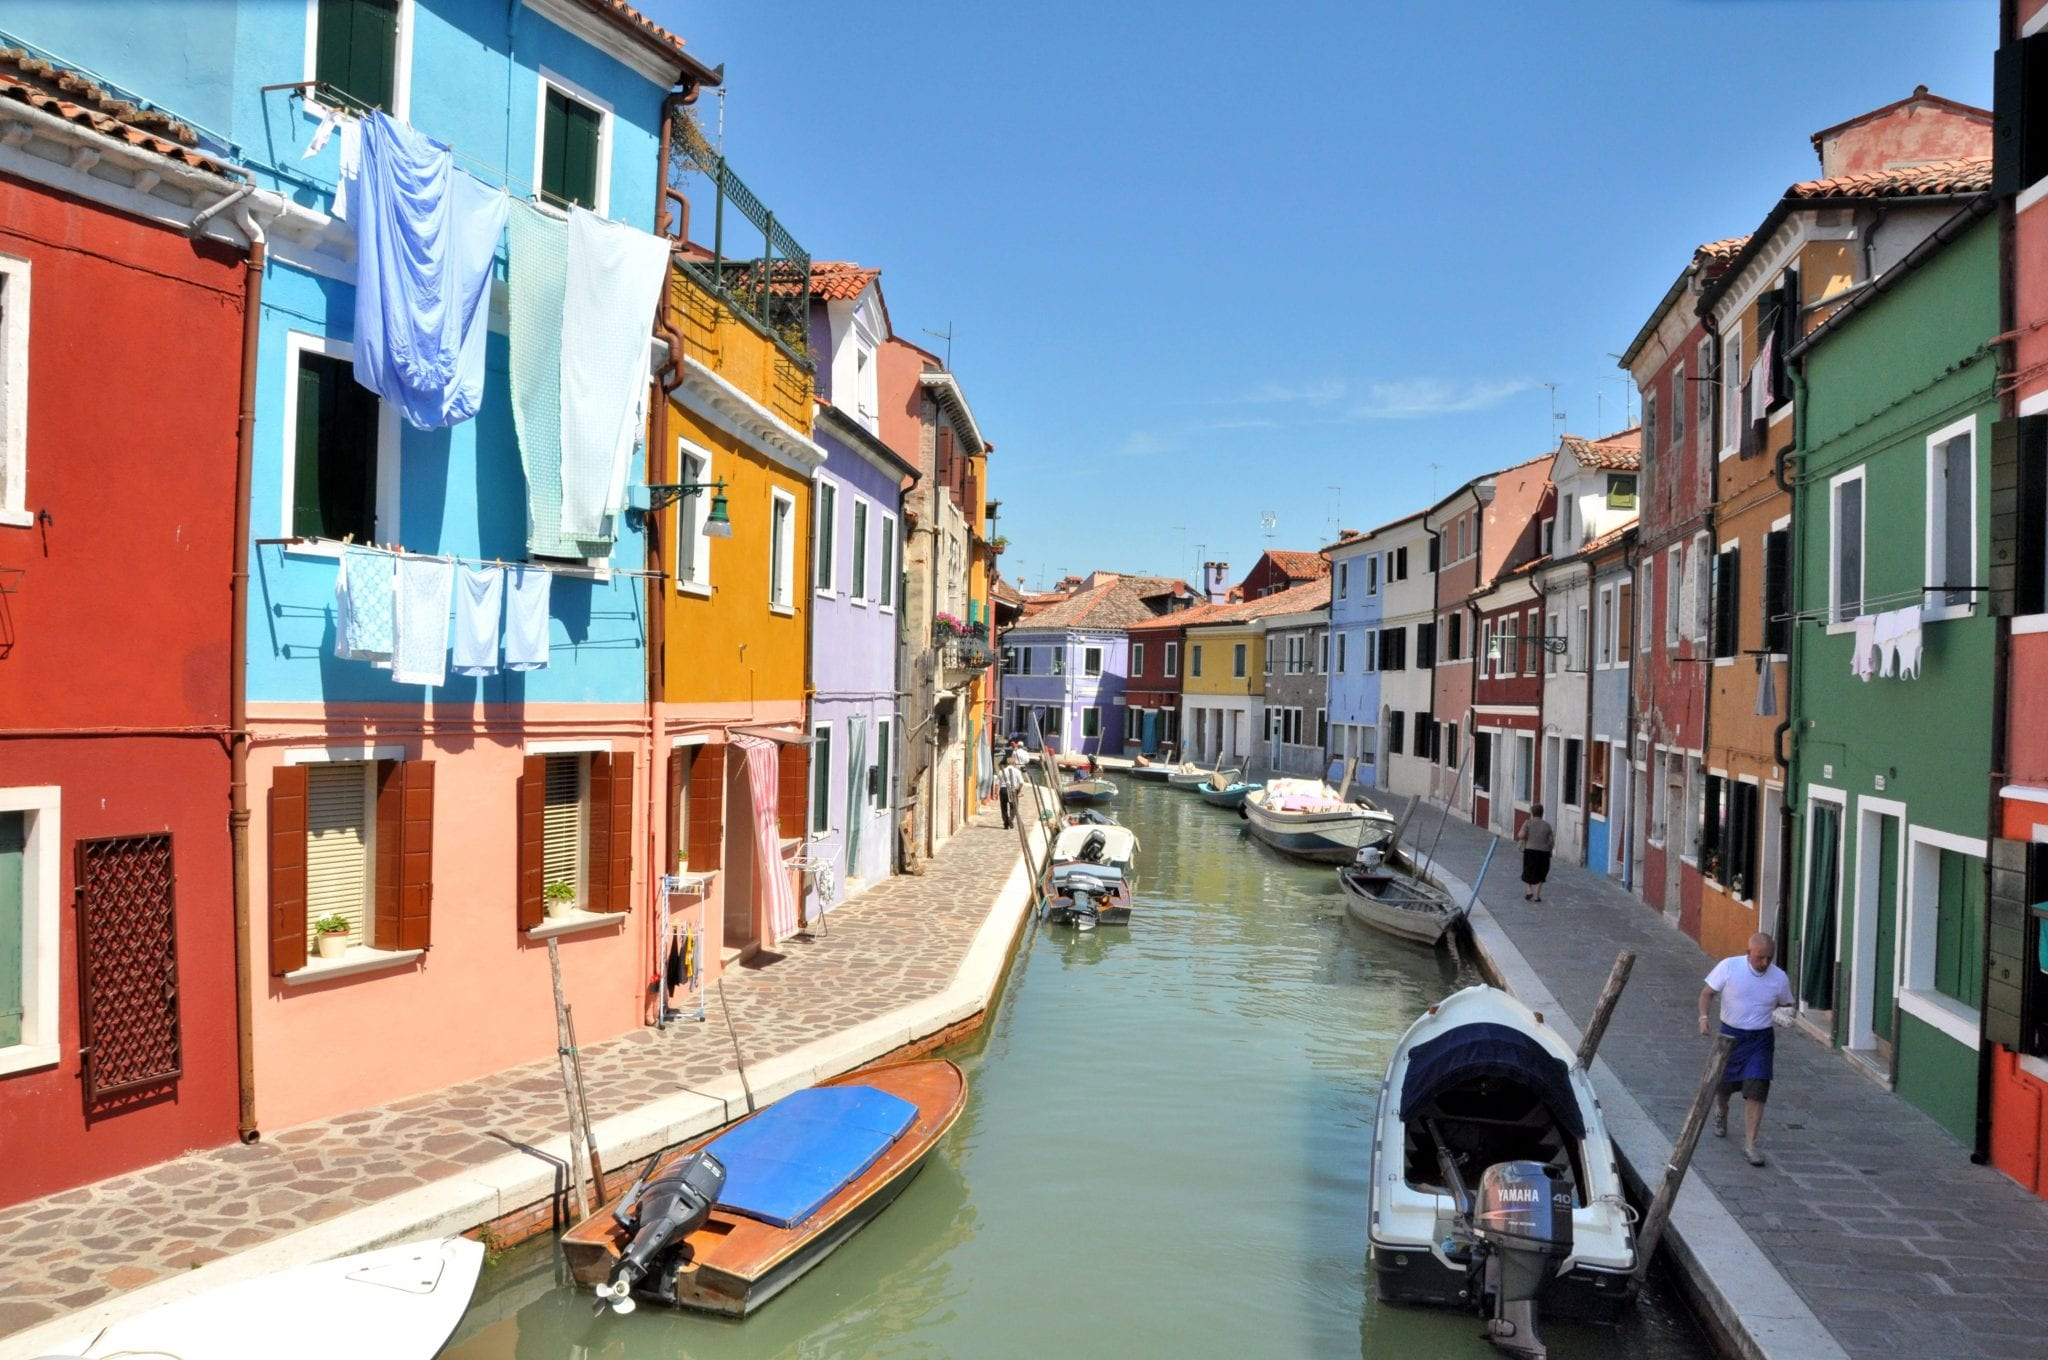 The main canal of Burano